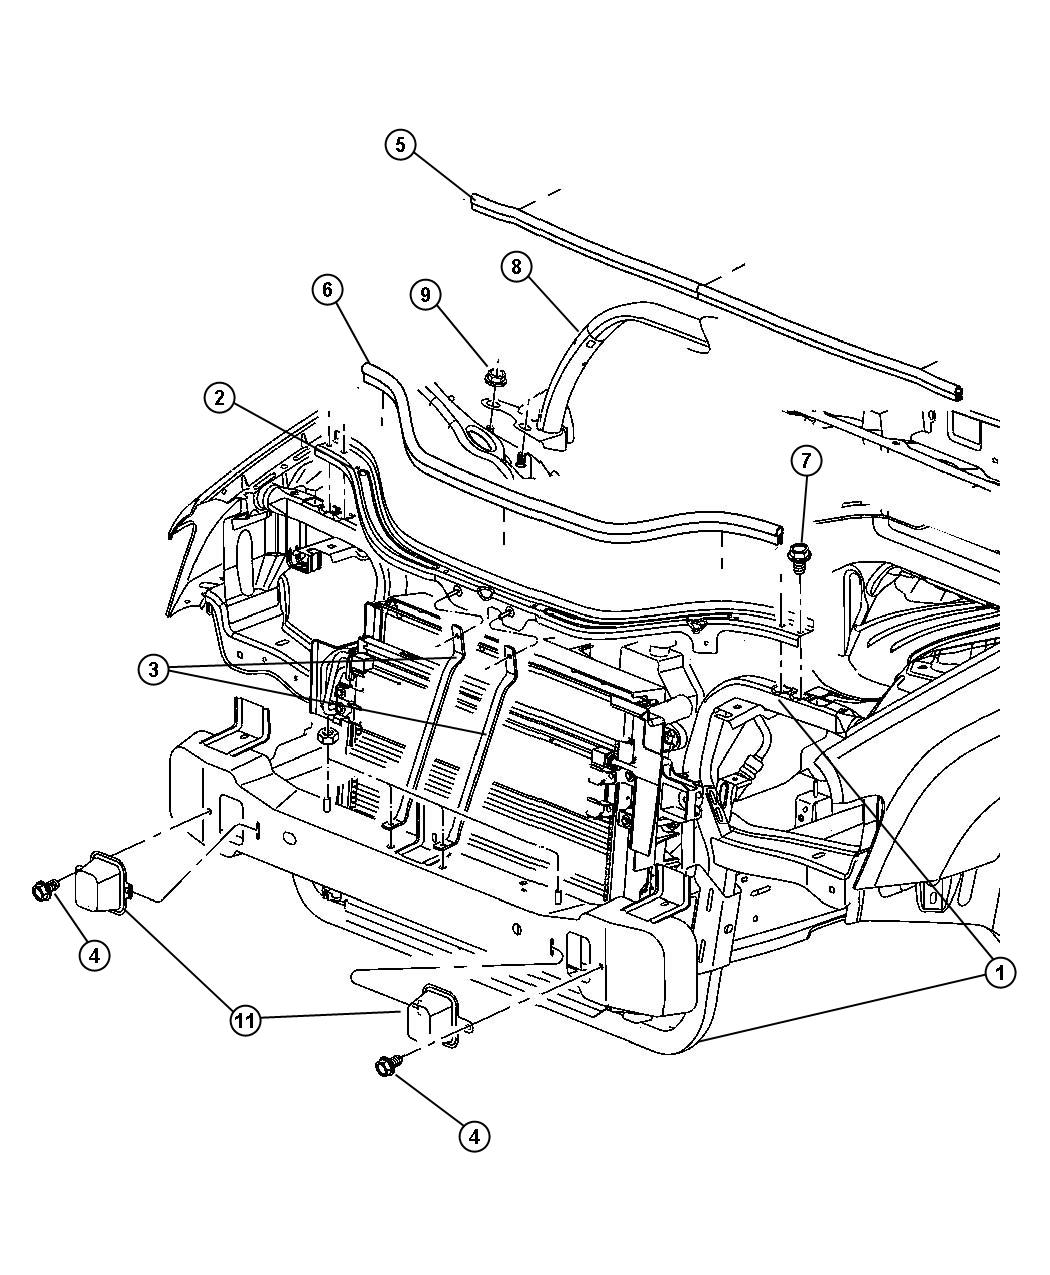 Dodge Charger Radiator Support Diagram